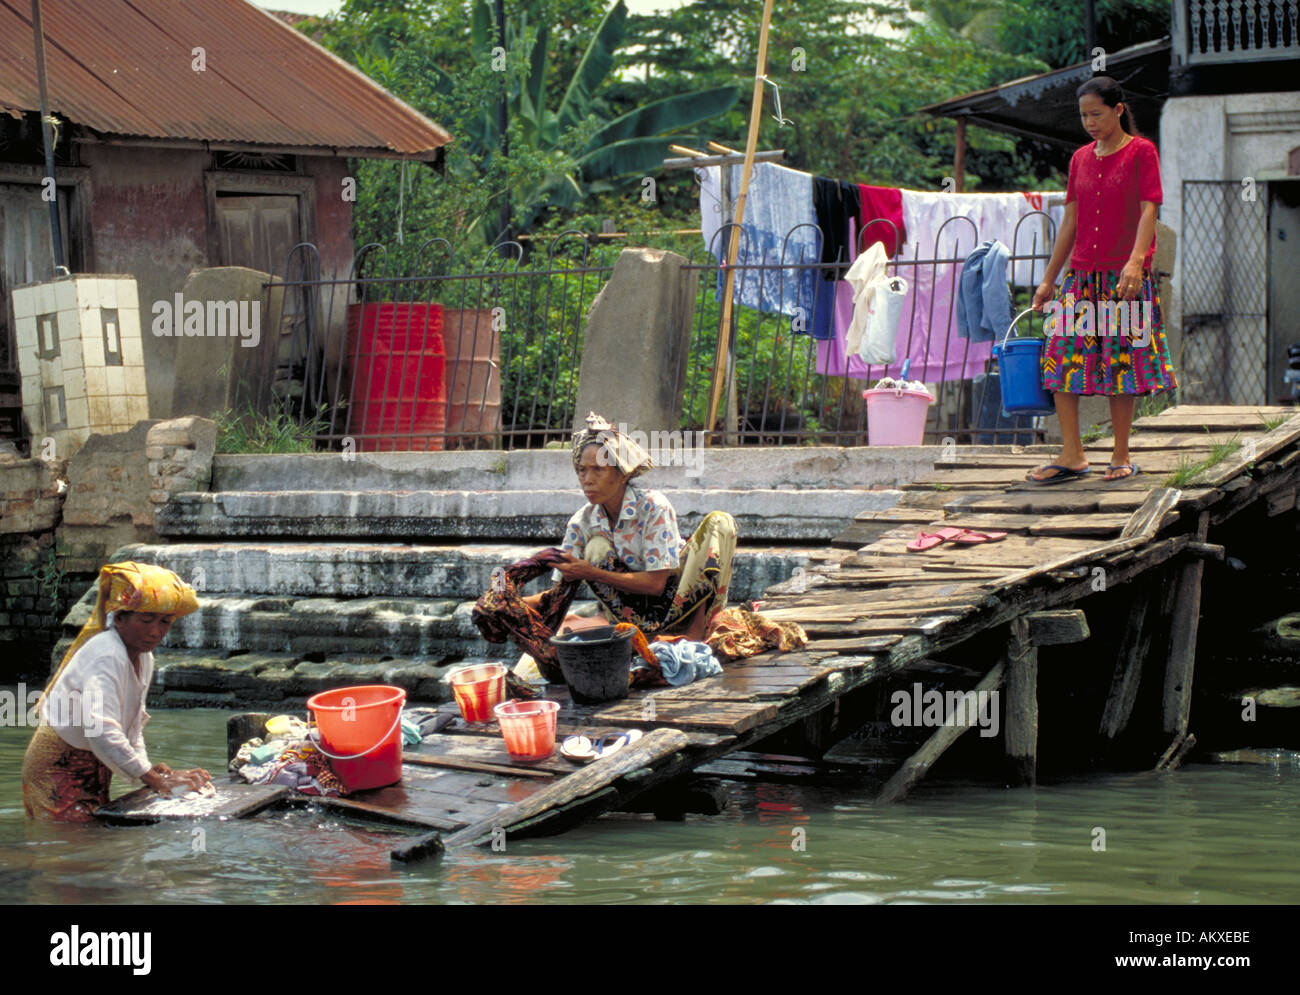 Families in Palembang Indonesia wash clothes in the Musi River. Living conditions along the river are crowded. - Stock Image